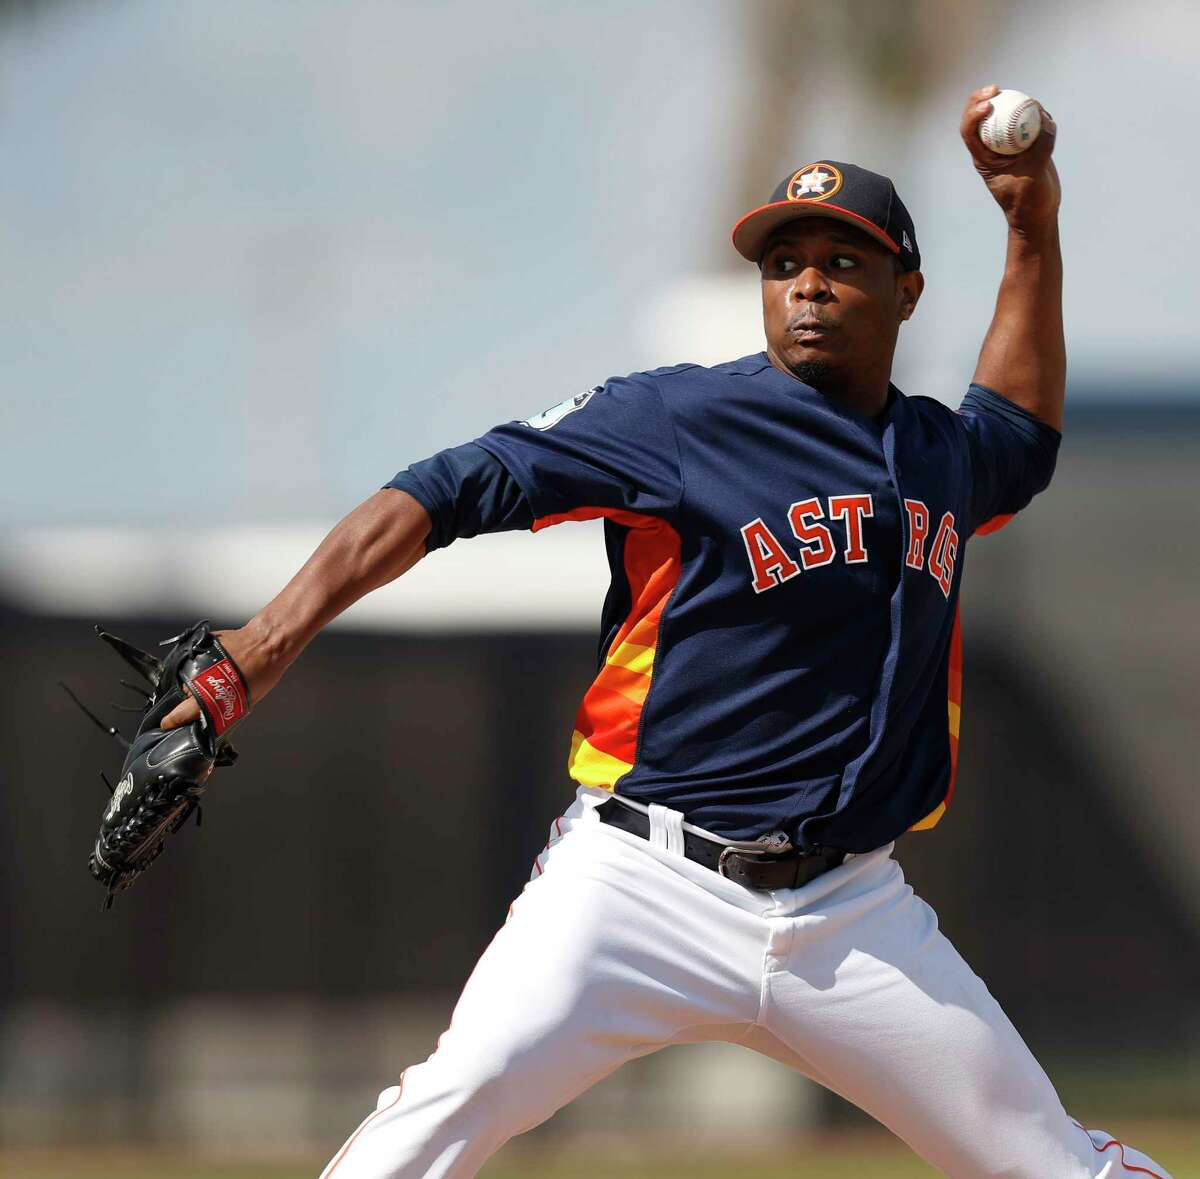 In trying to get more of his split-finger pitches in the strike zone in 2016, left, Astros reliever Tony Sipp overcompensated by adapting an over-the-top arm slot. This spring, right, he's looking to go back to the the three-quarter slot that made him much more effective in 2015.